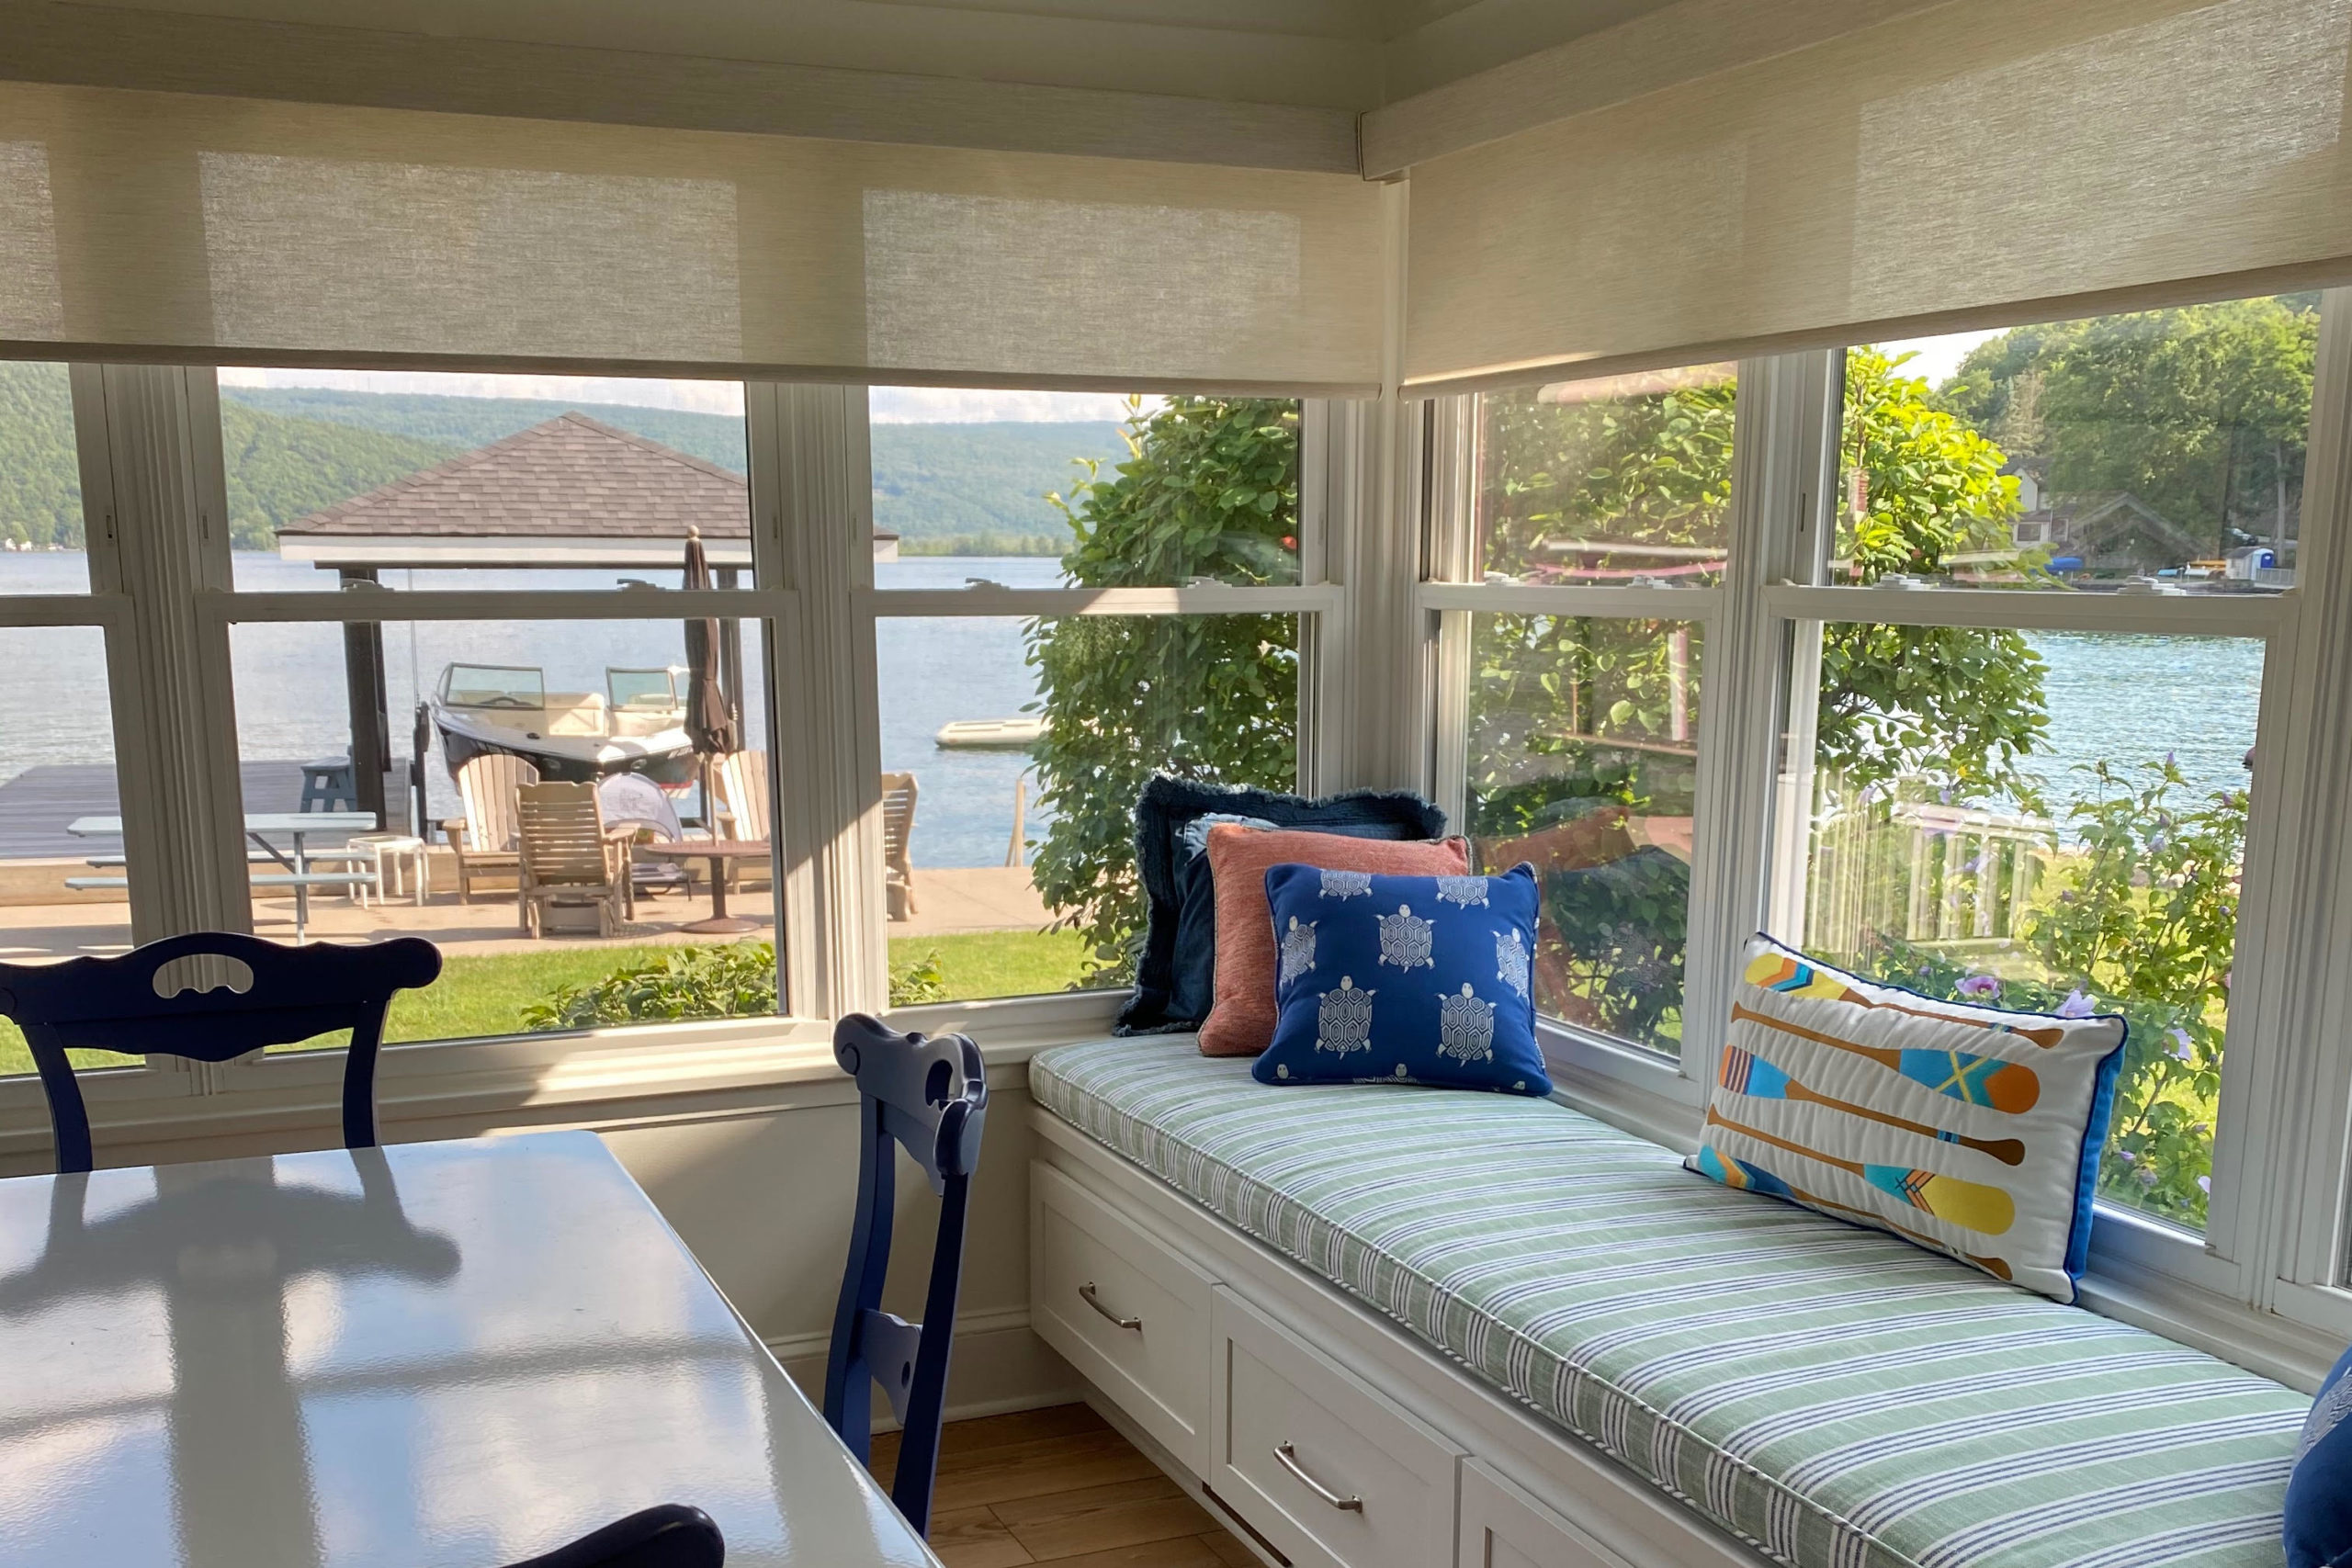 Window Treatments for Sun Protection